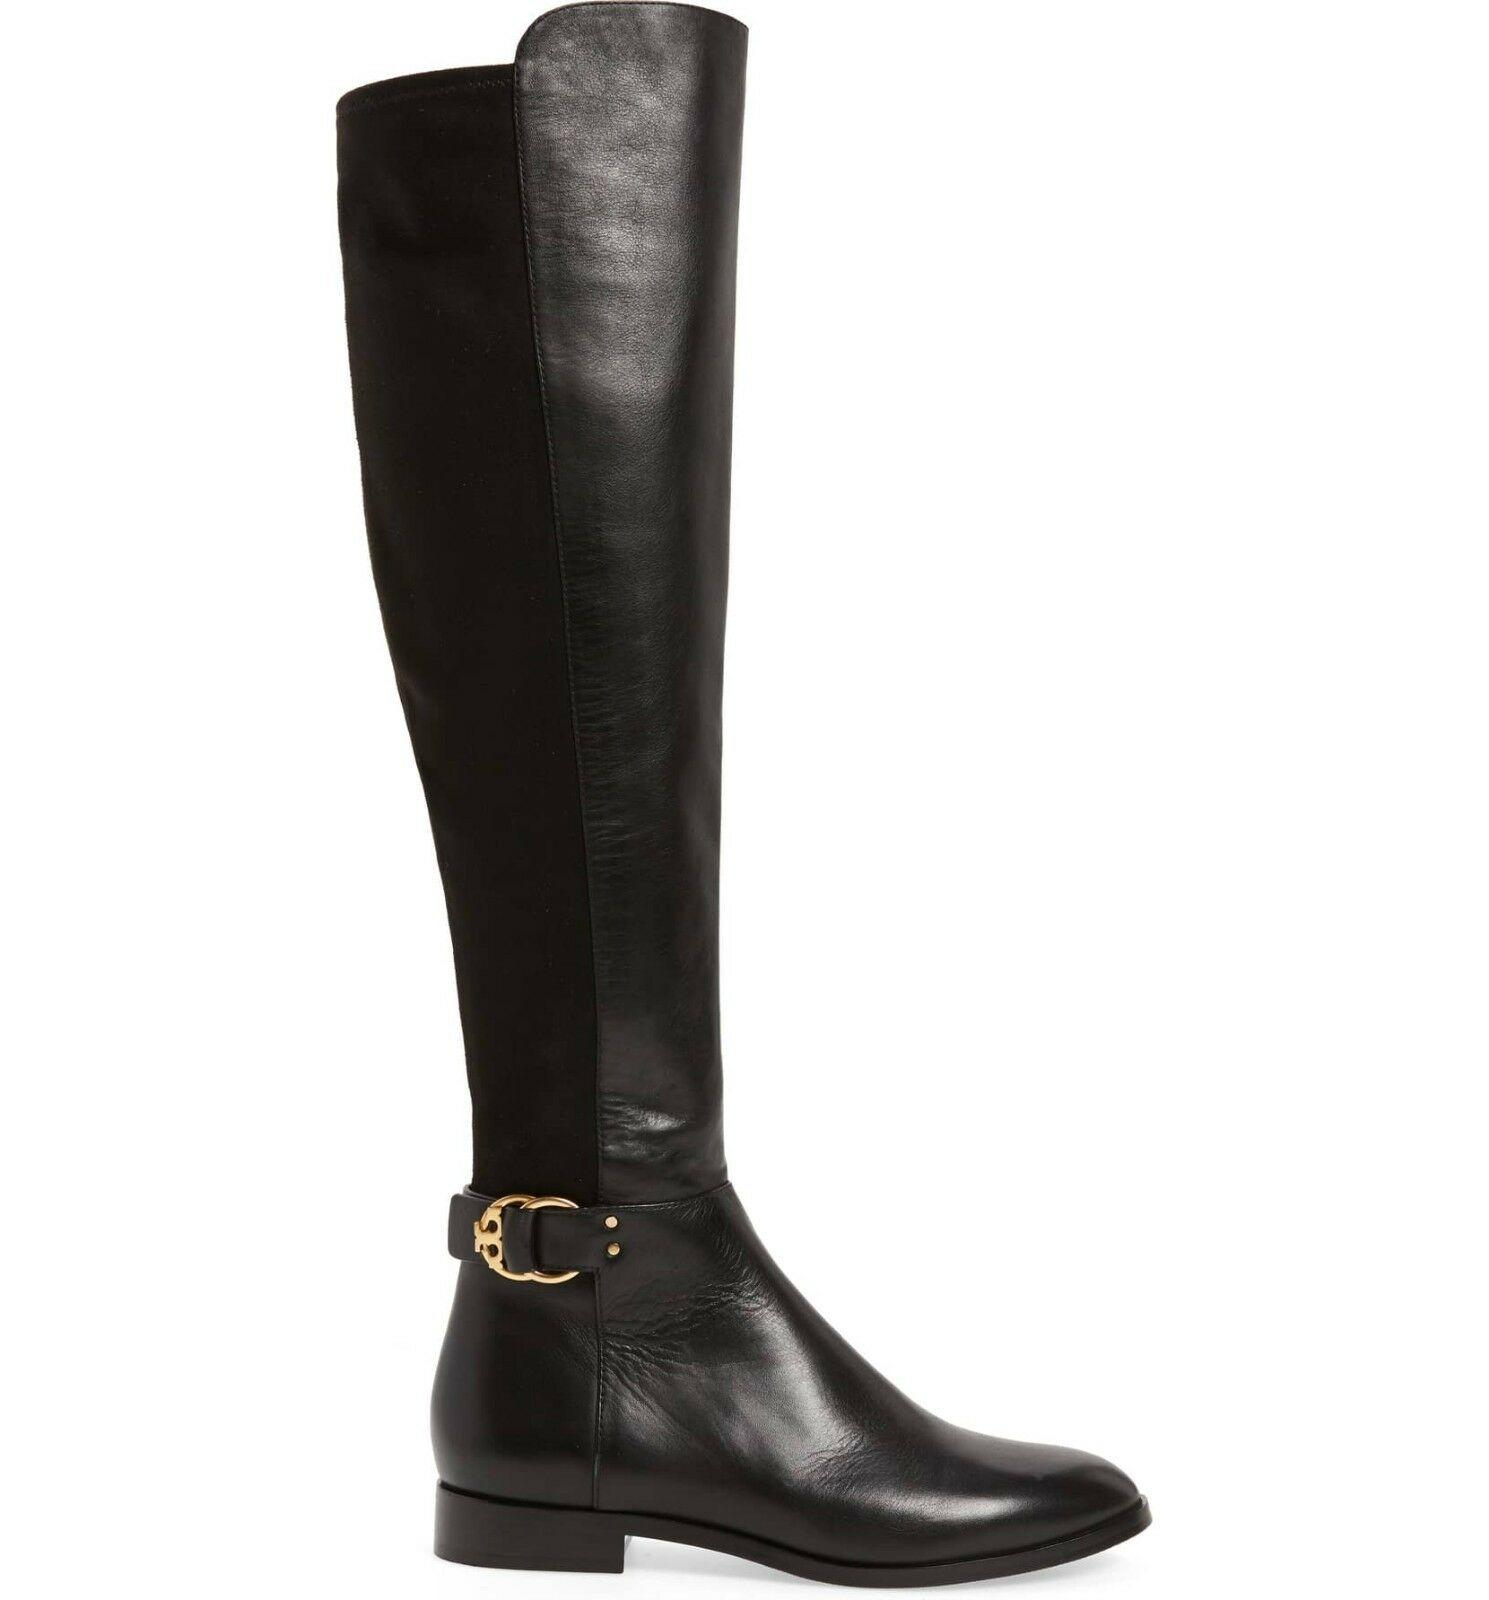 Tory Burch MARSDEN Stretch Riding Boots Flat Equestrian Booties 10.5 Over Knee